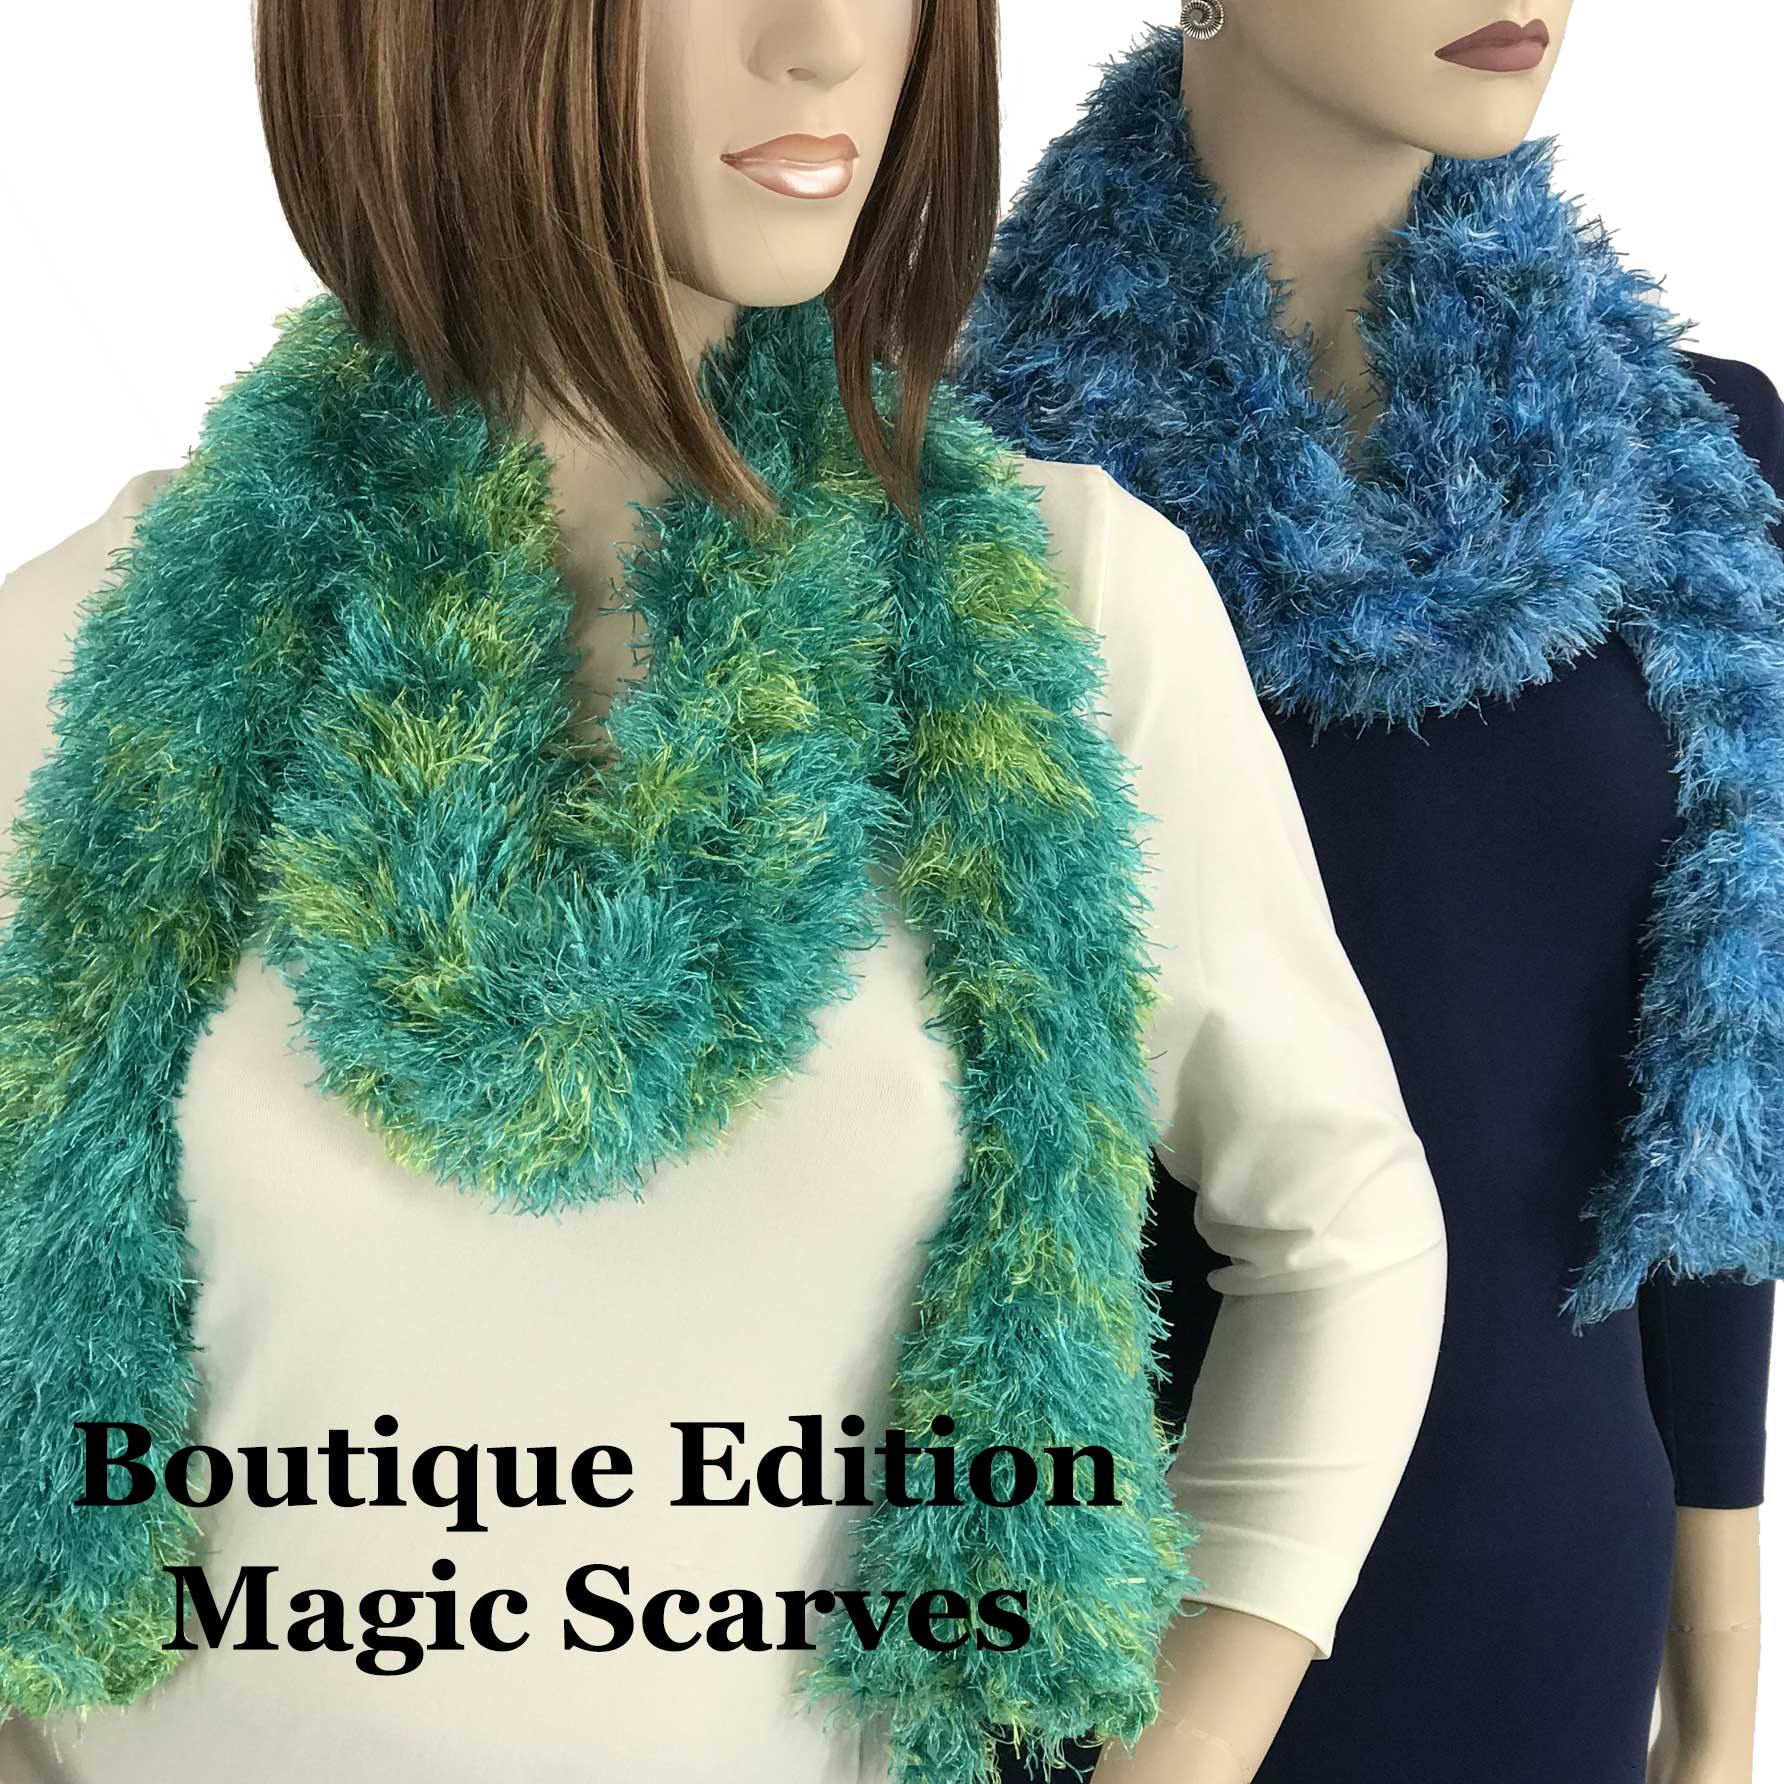 Boutique Edition Magic Scarves